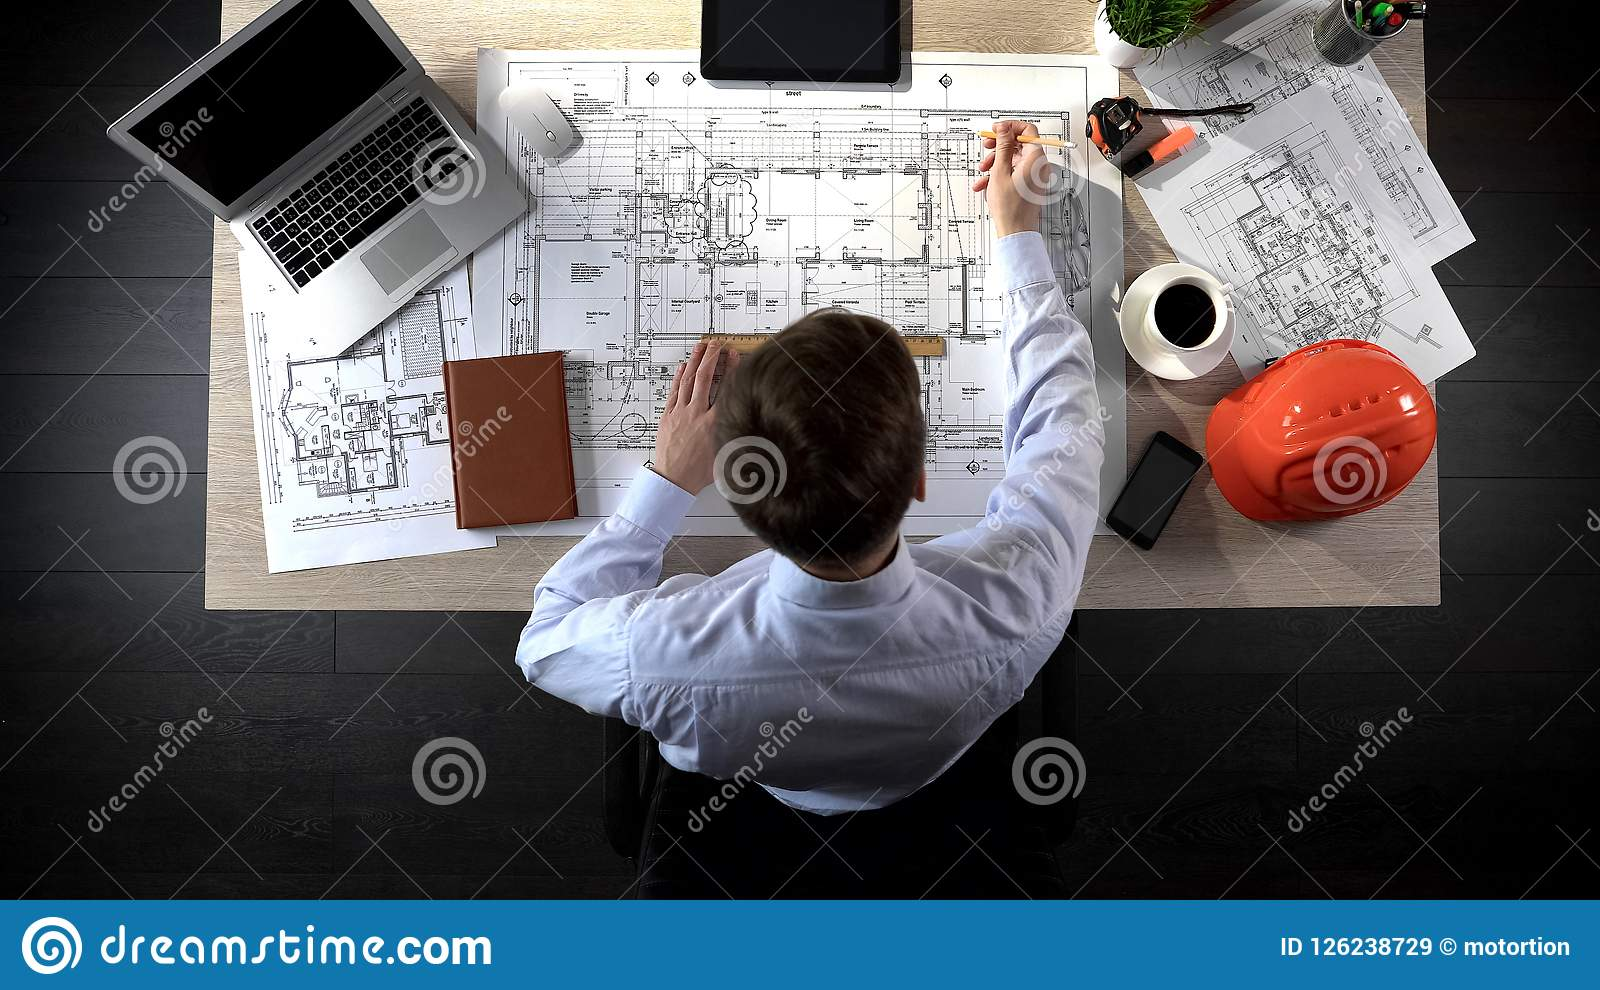 Engineer drawing plan of building, safety engineering, office location planning